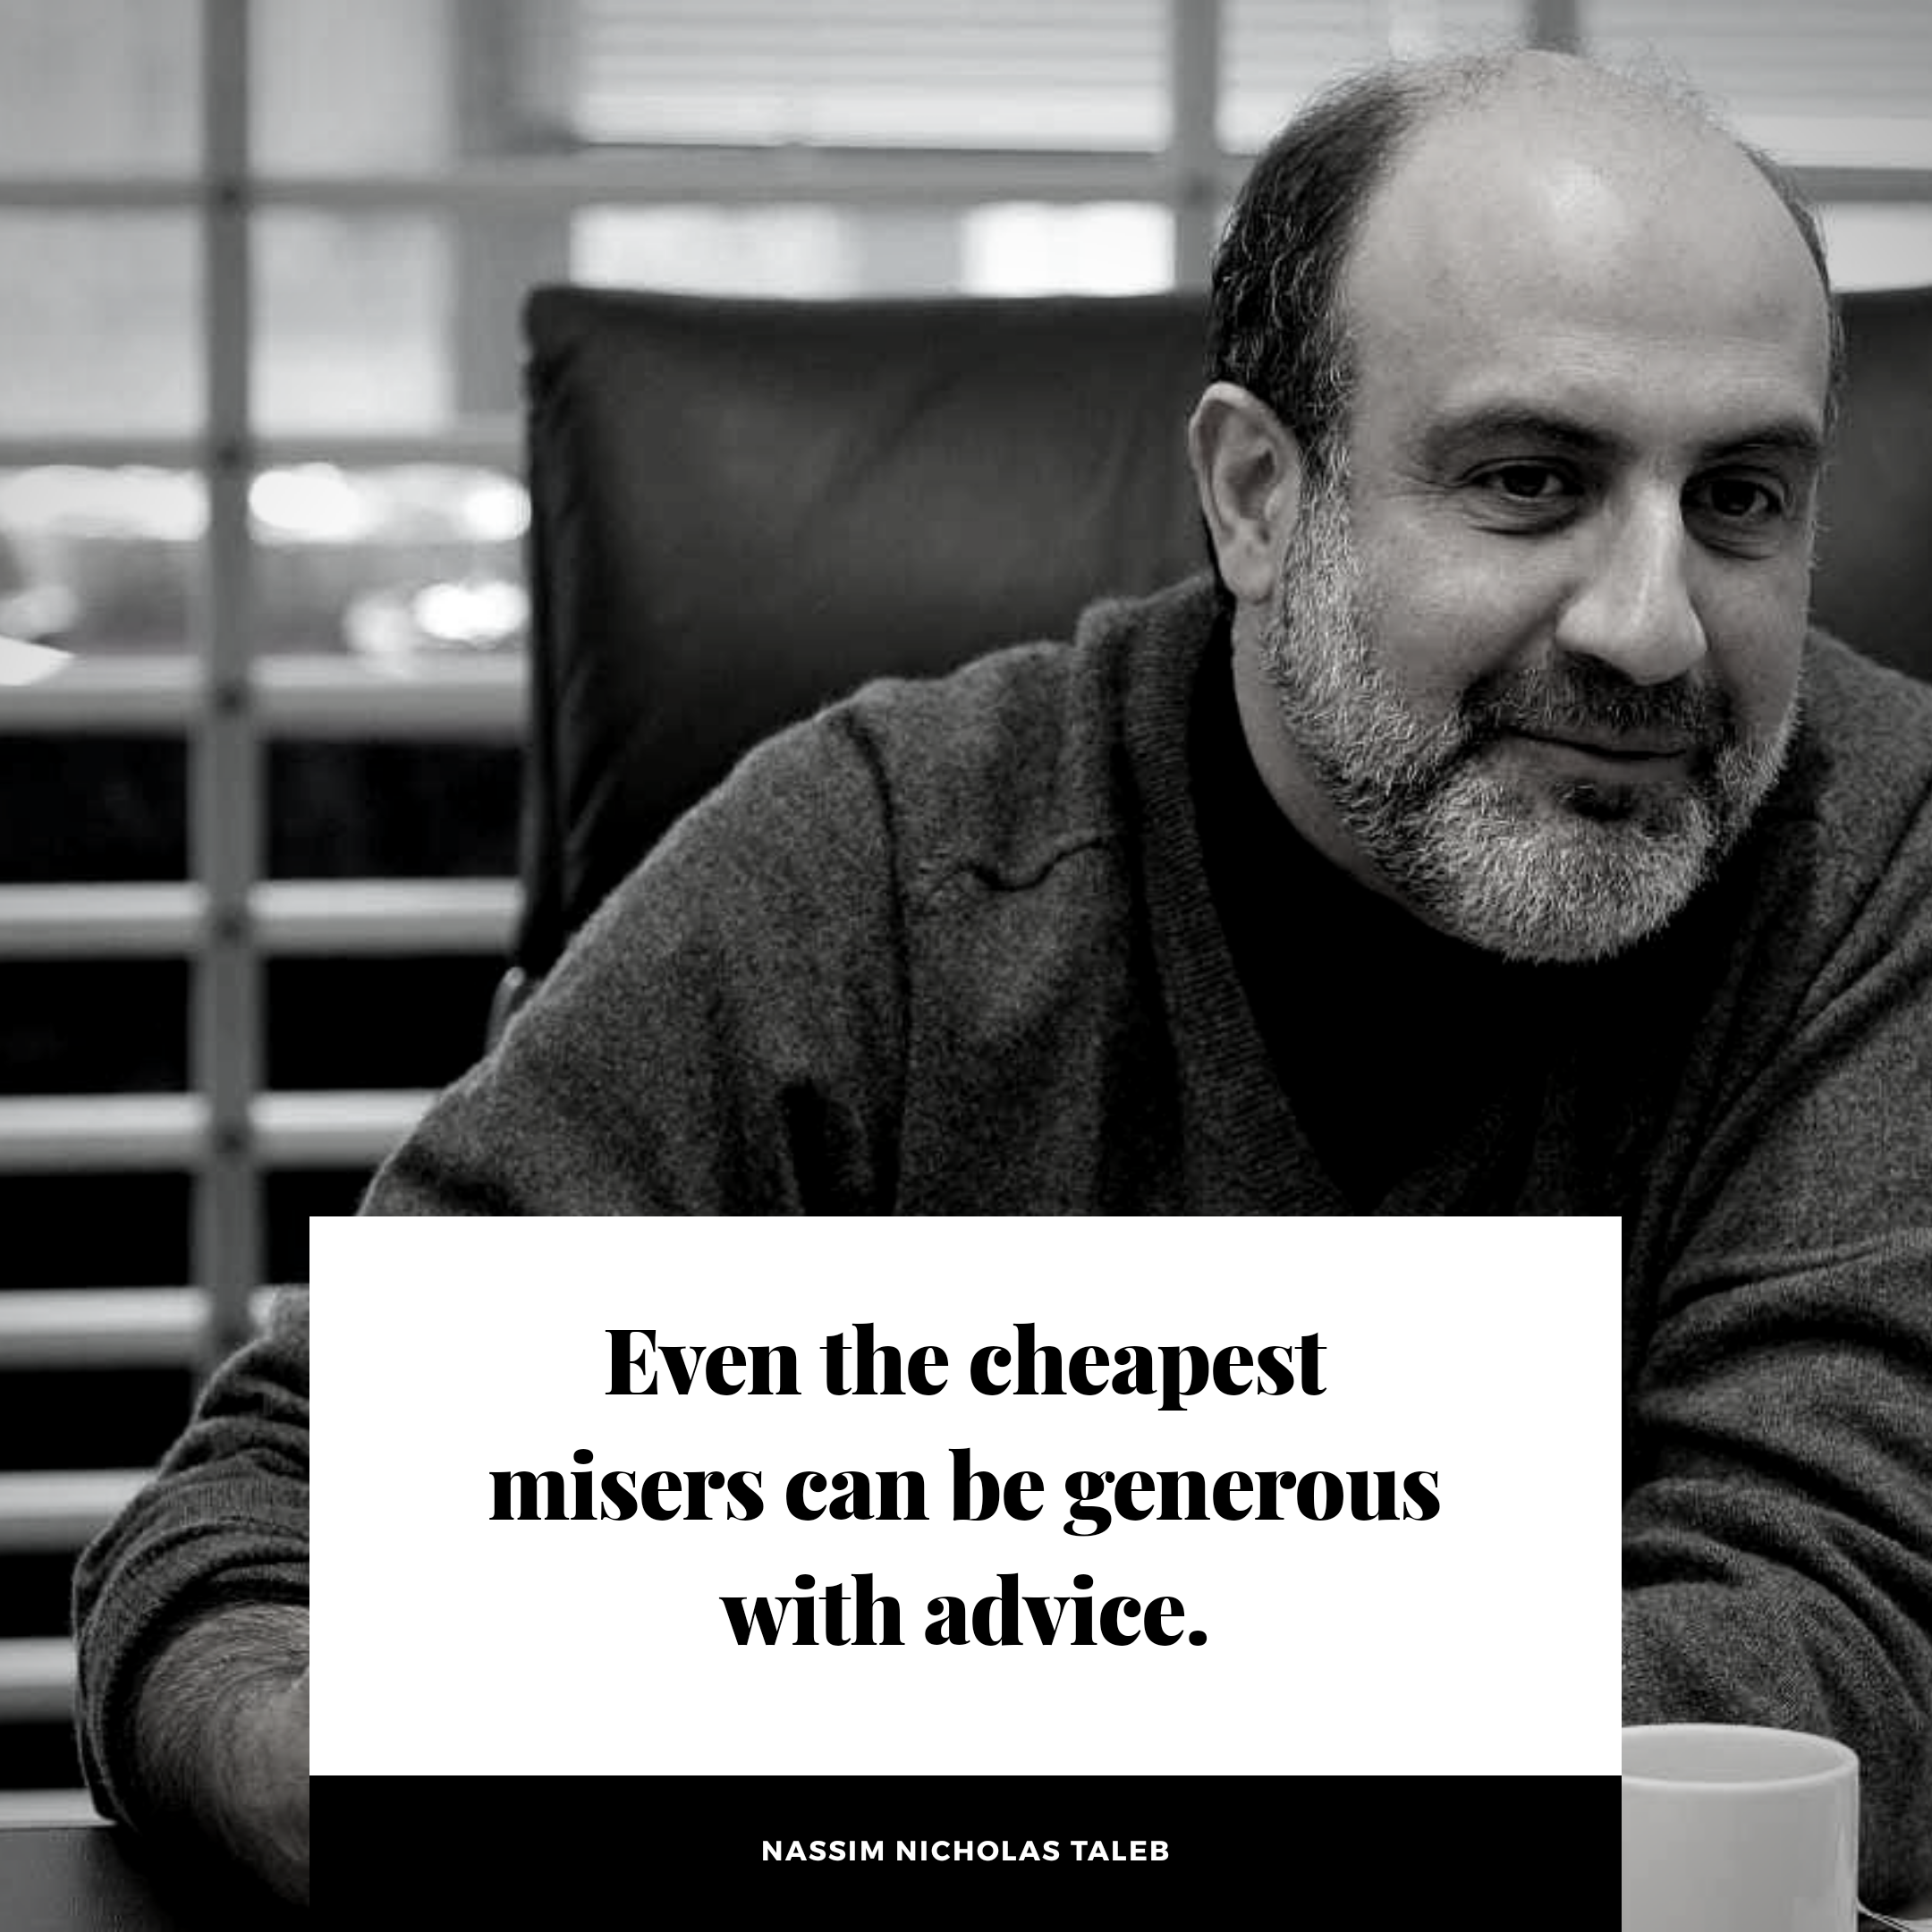 """Even the cheapest misers can be generous with advice."" – Nassim Taleb [2160×2160]"